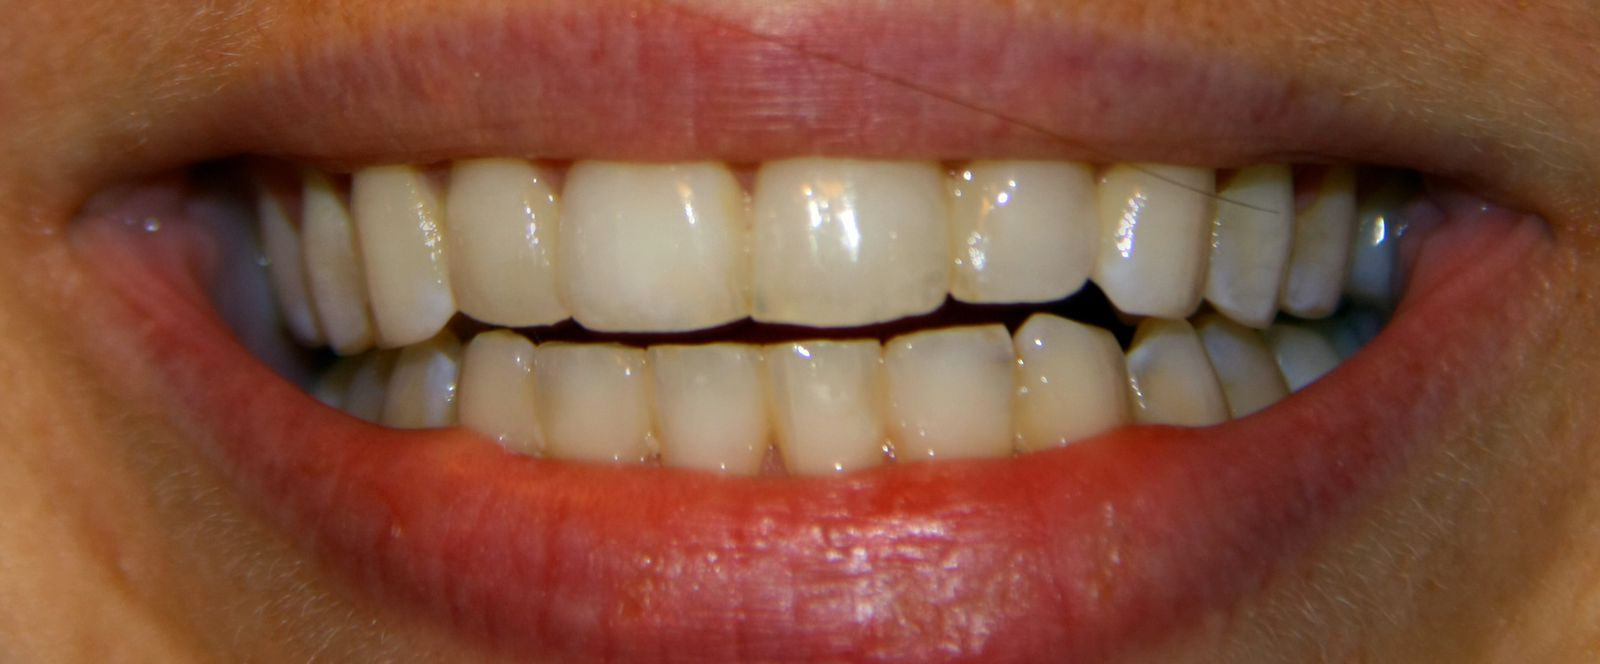 site mon orthodontie invisalign a bandol.over blog.fr